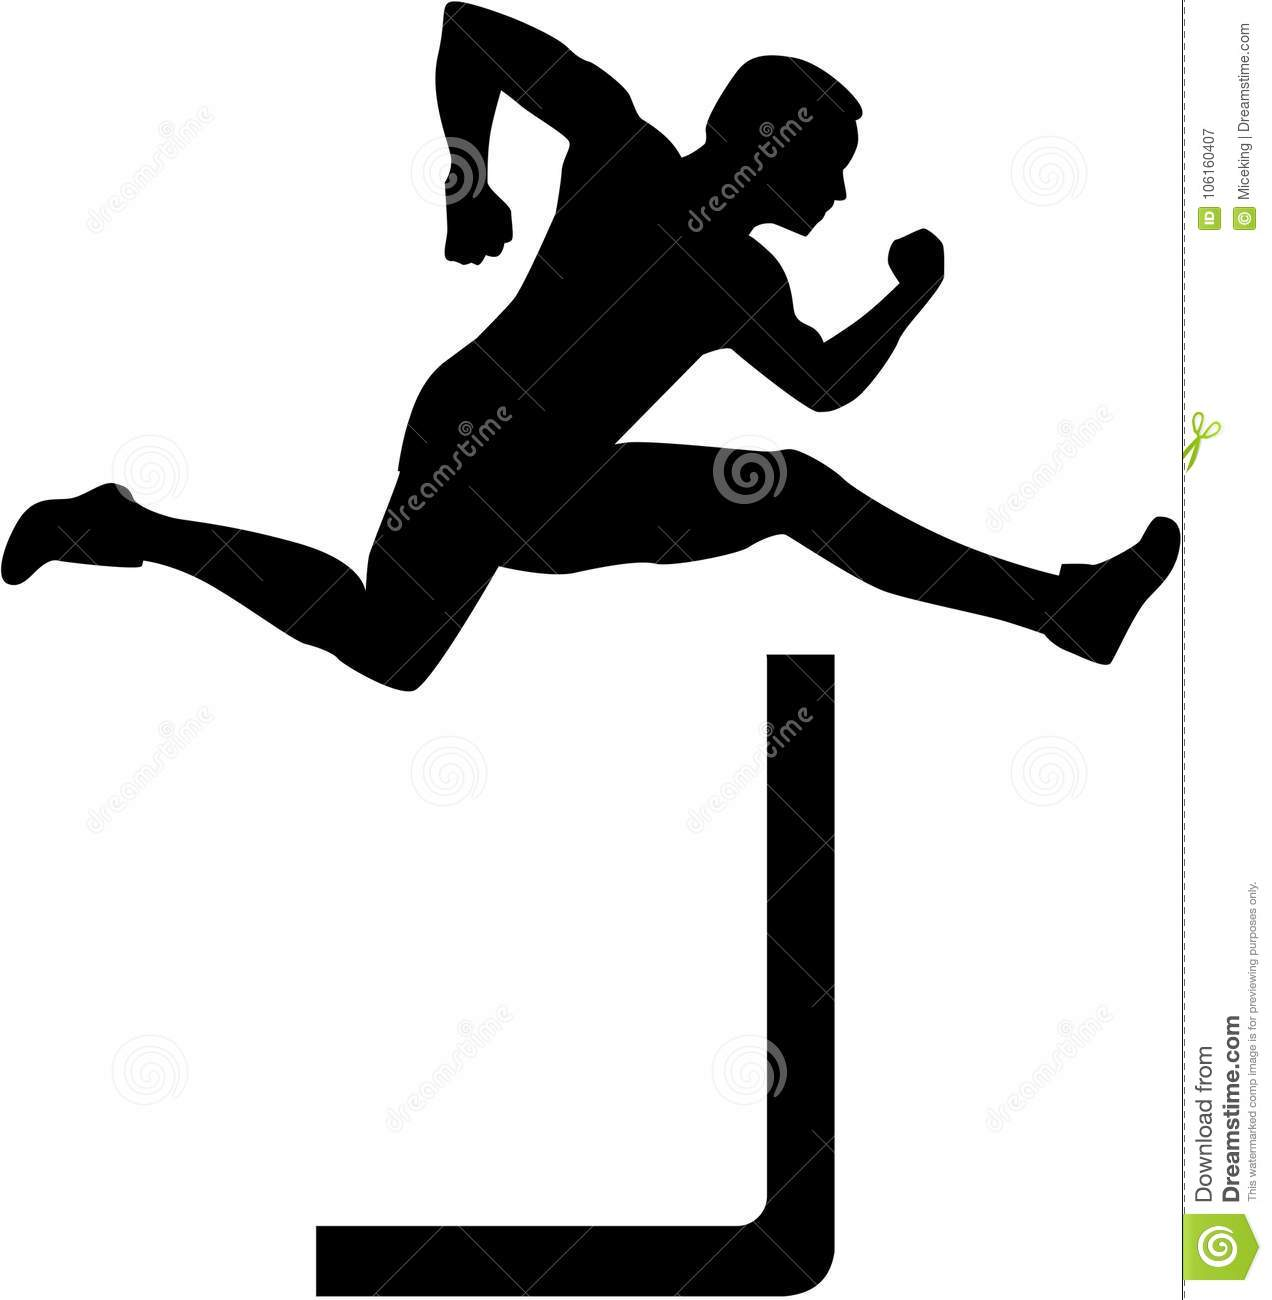 Athlete Jumping Over Hurdles Stock Illustrations – 34 ...